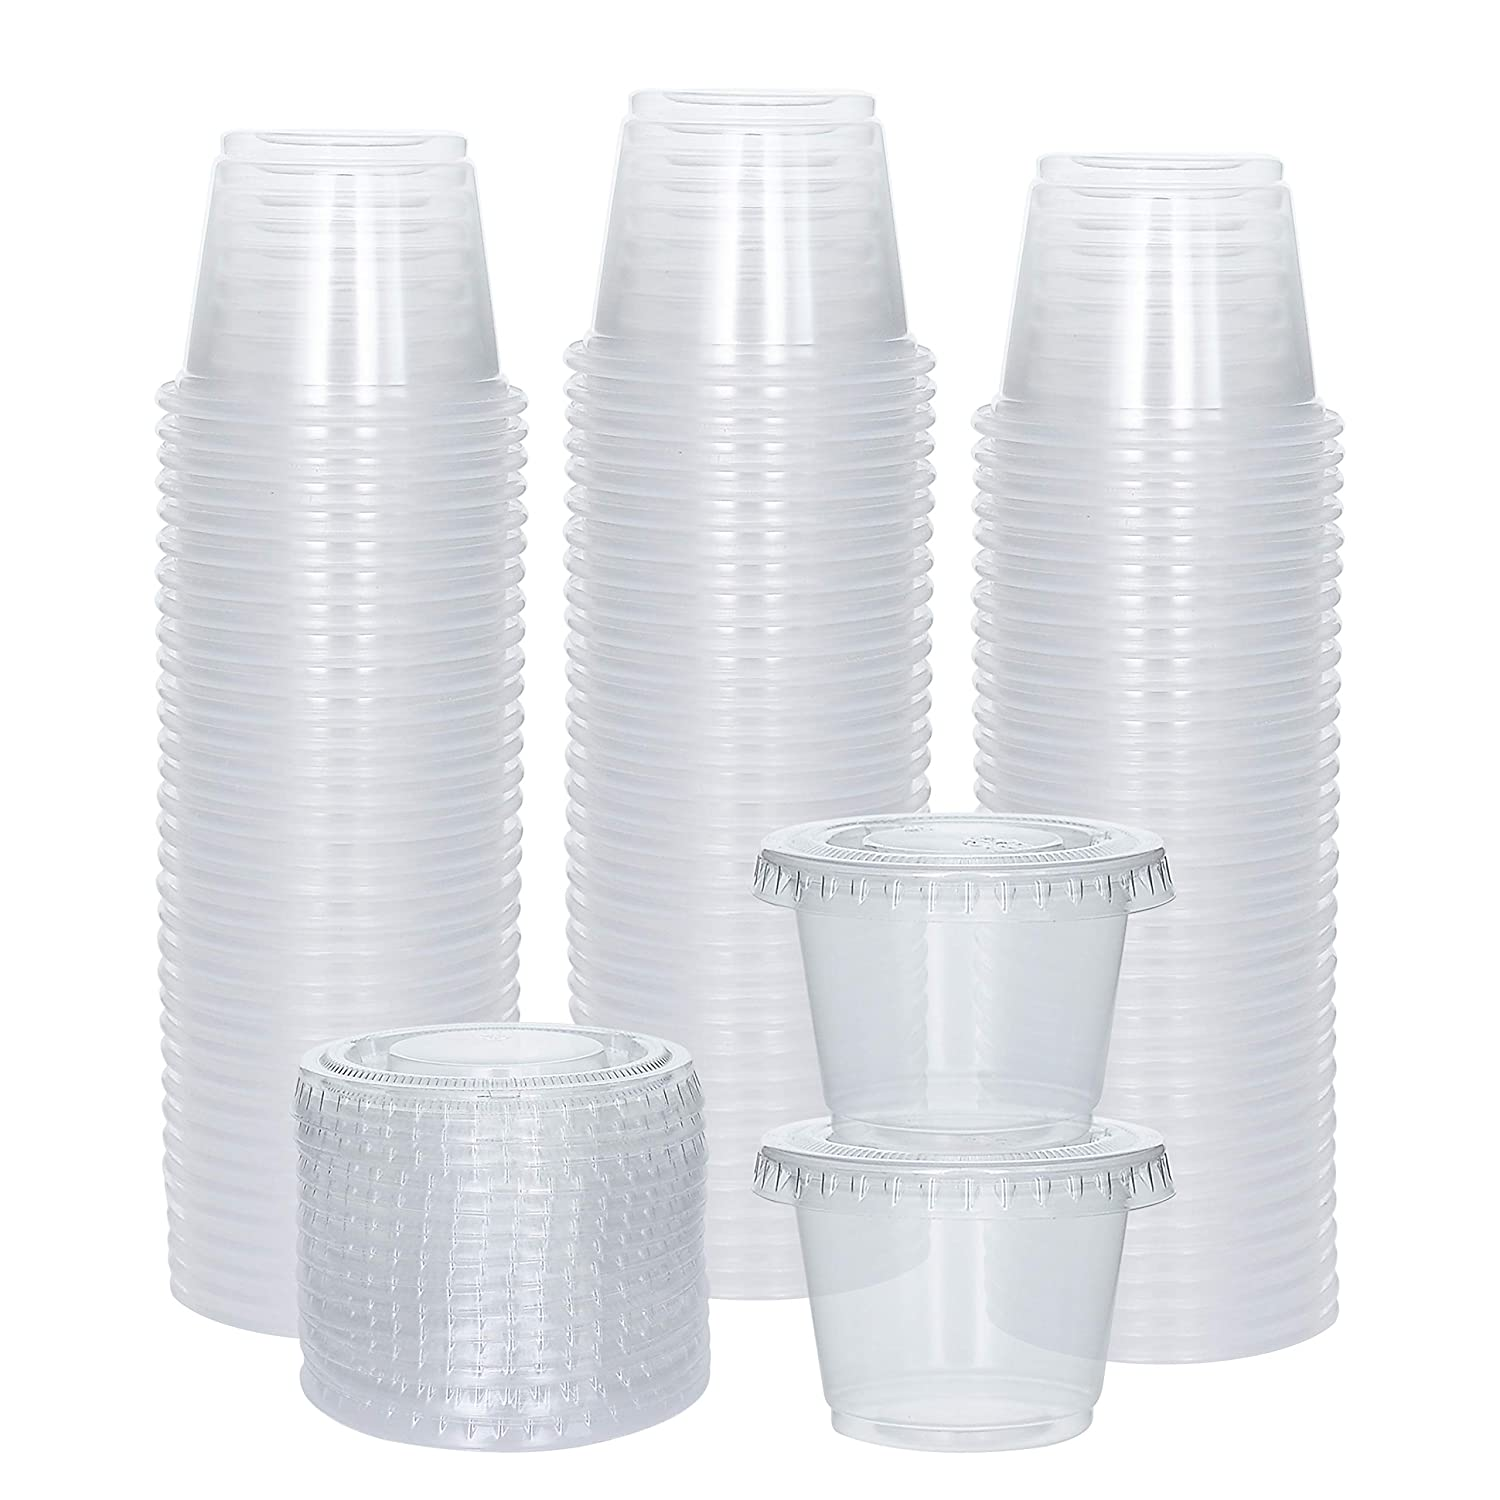 [100 Sets] 1 oz Small Plastic Containers with Lids, Jello Shot Cups, Disposable Portion Cups, Souffle Cups